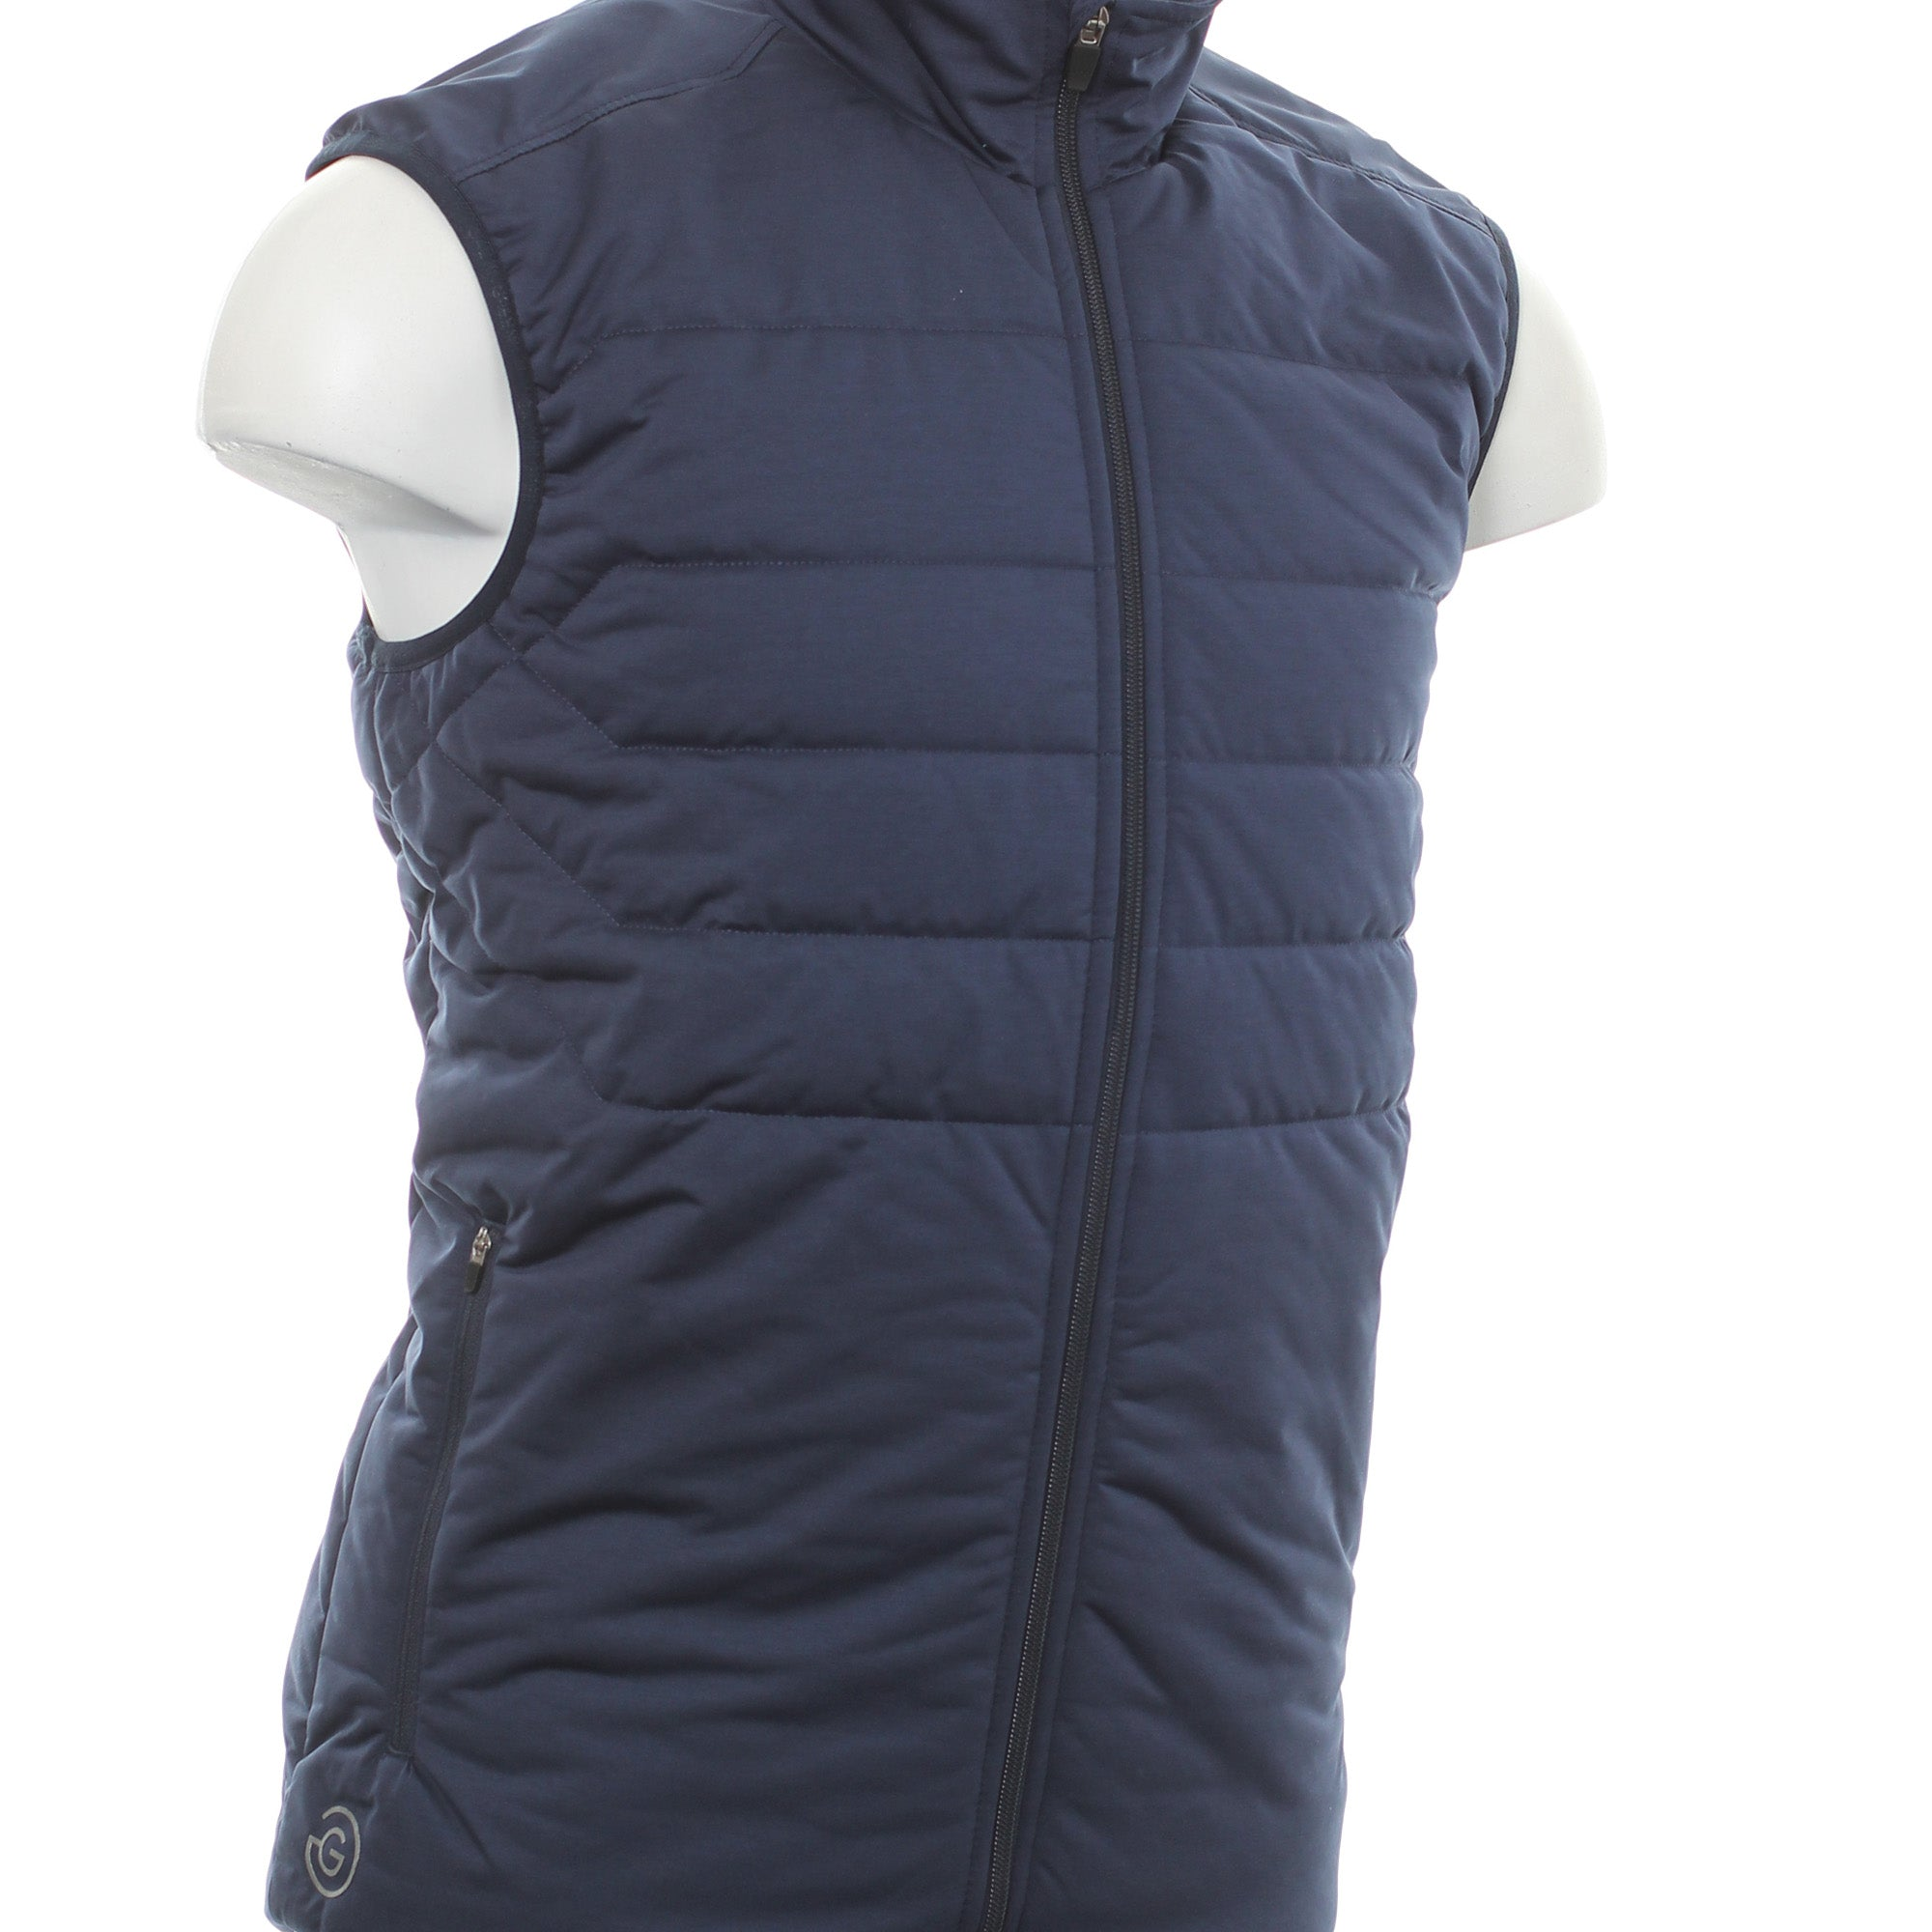 Galvin Green Lawson Interface-1 Primaloft Body Warmer